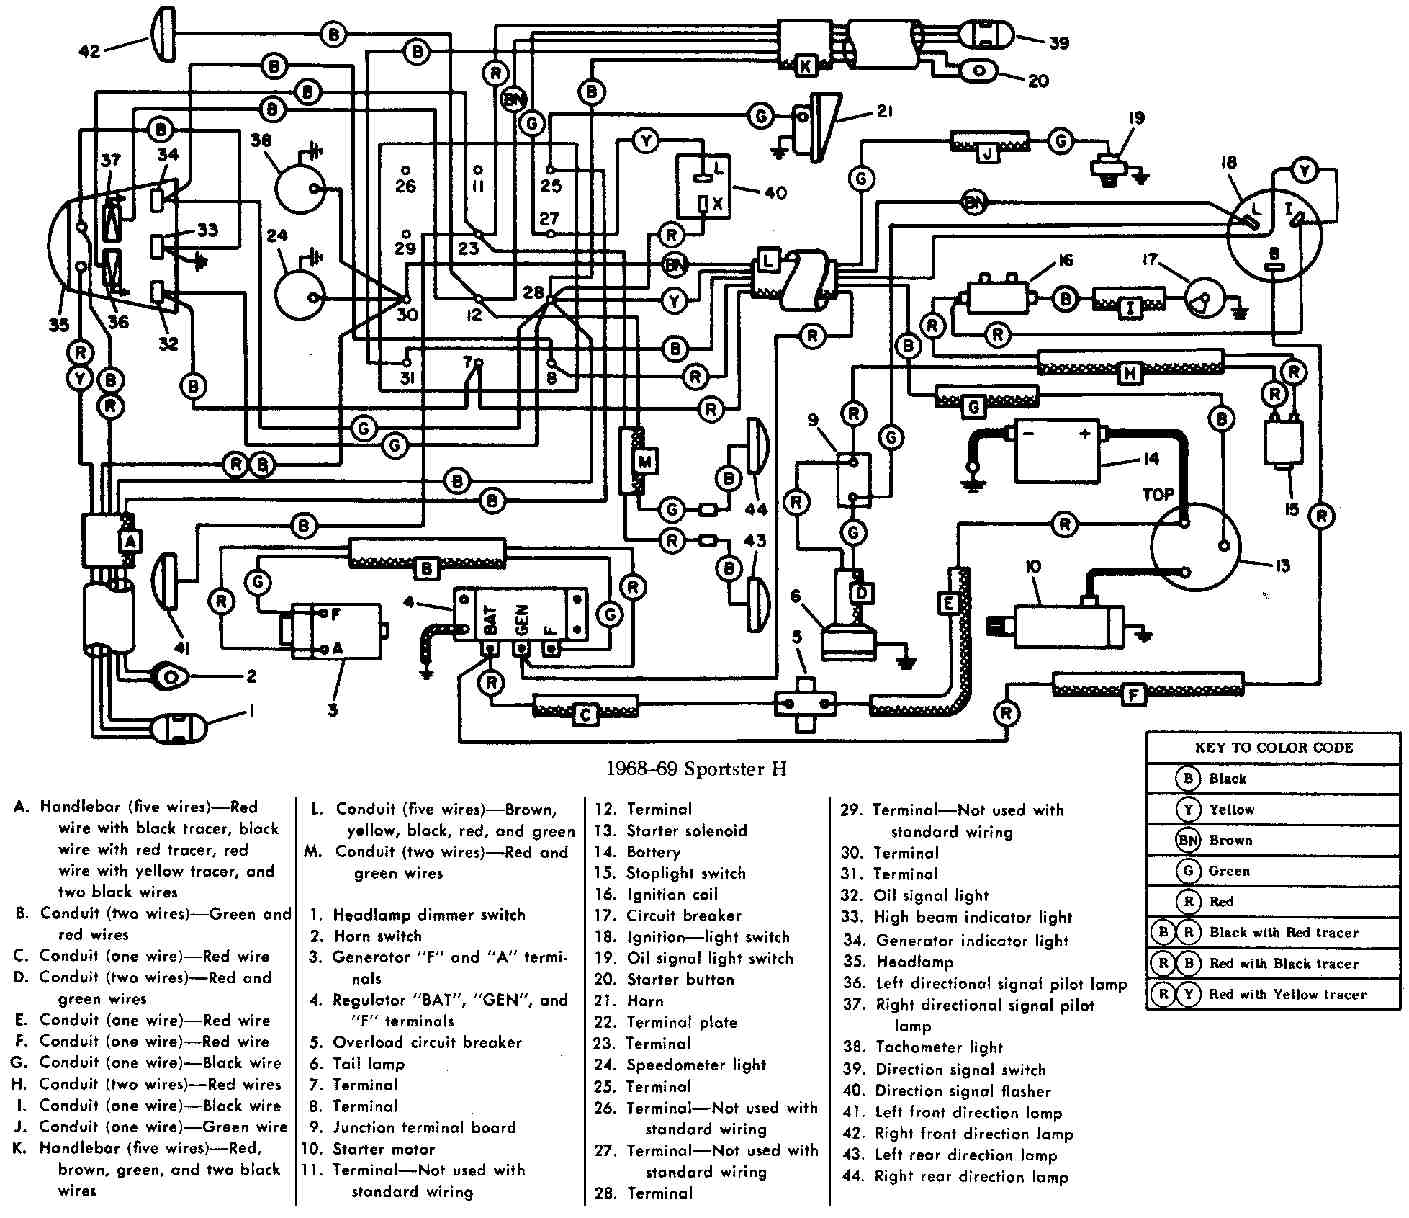 Harley Davidson Dyna Wiring Diagram. Harley. Free Download ... on